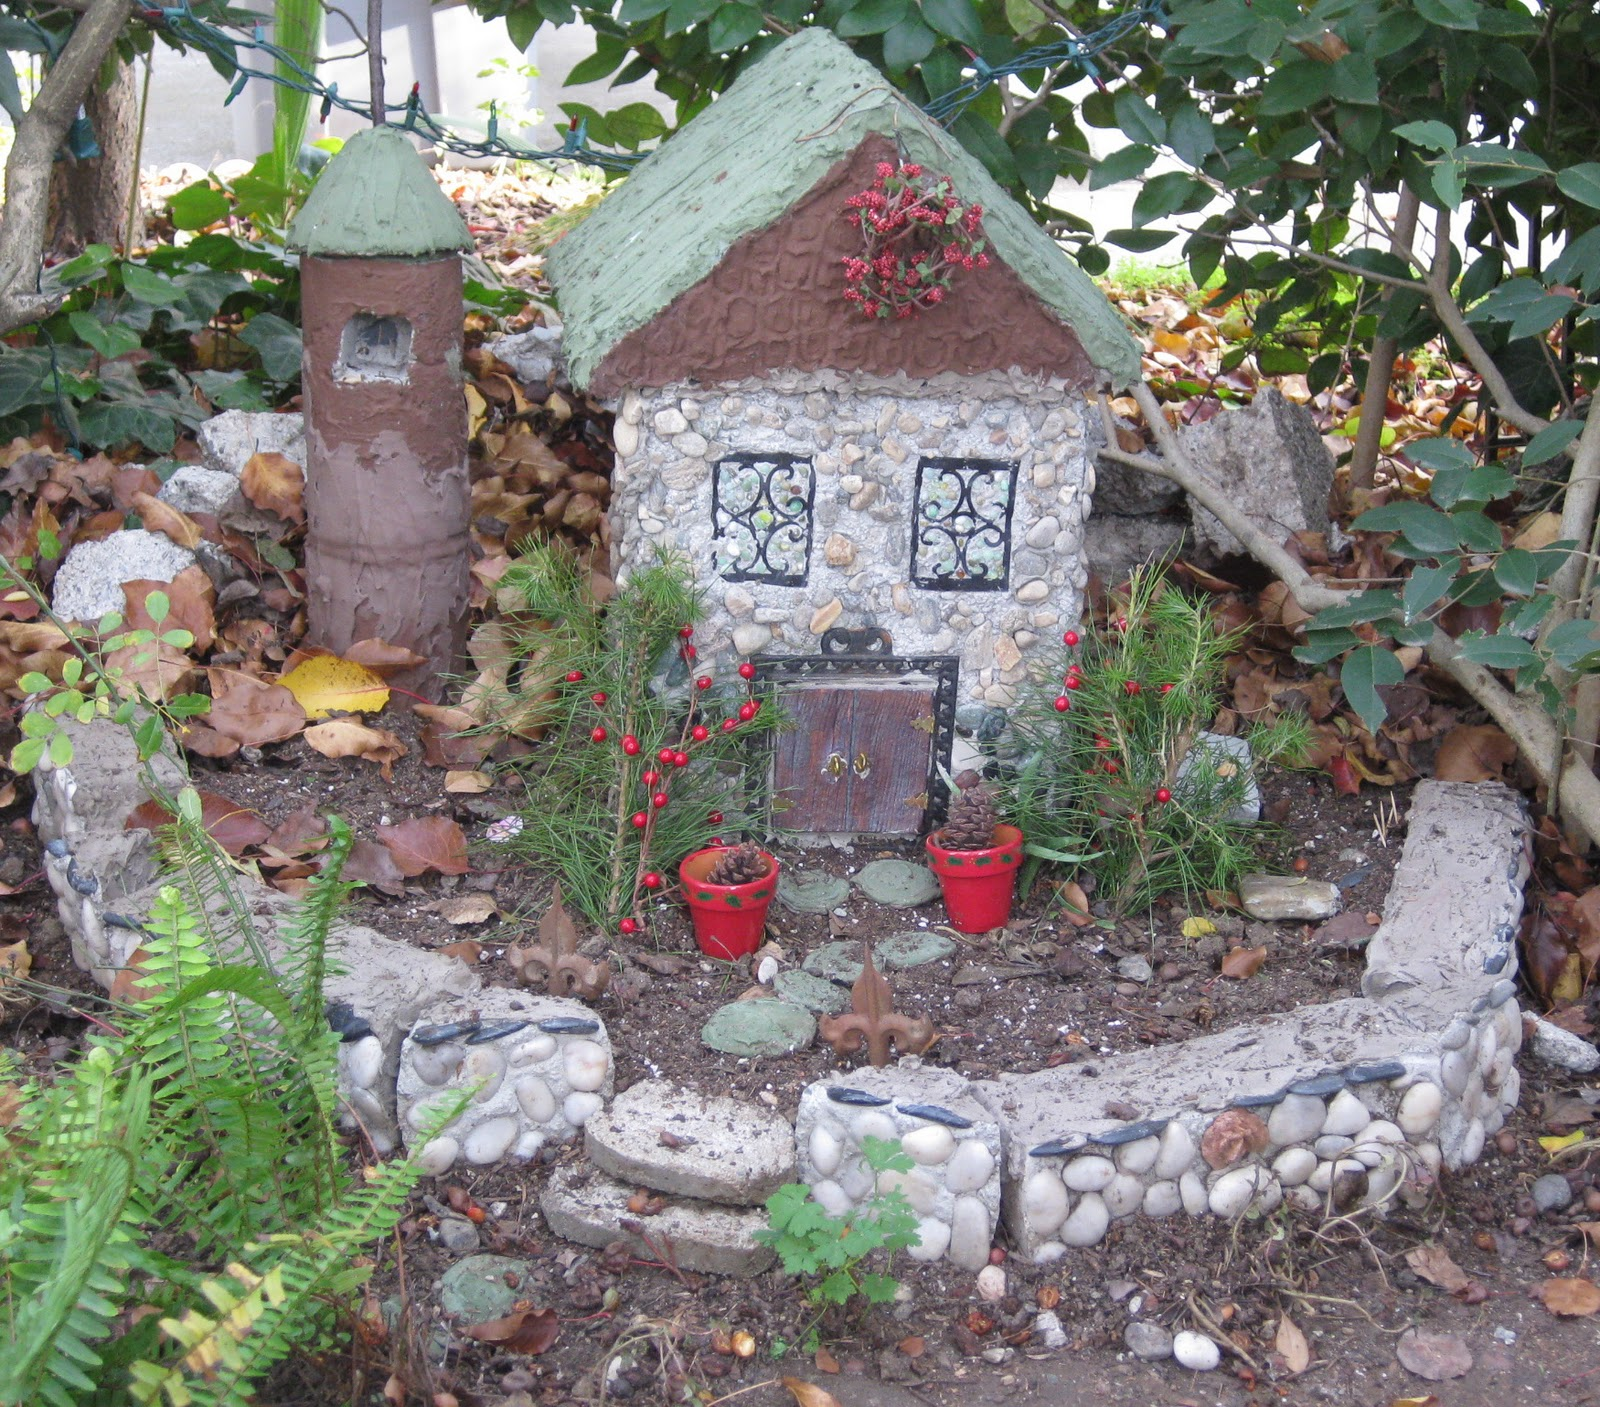 Growing A Garden In Davis The Fairy House Opens for Guests